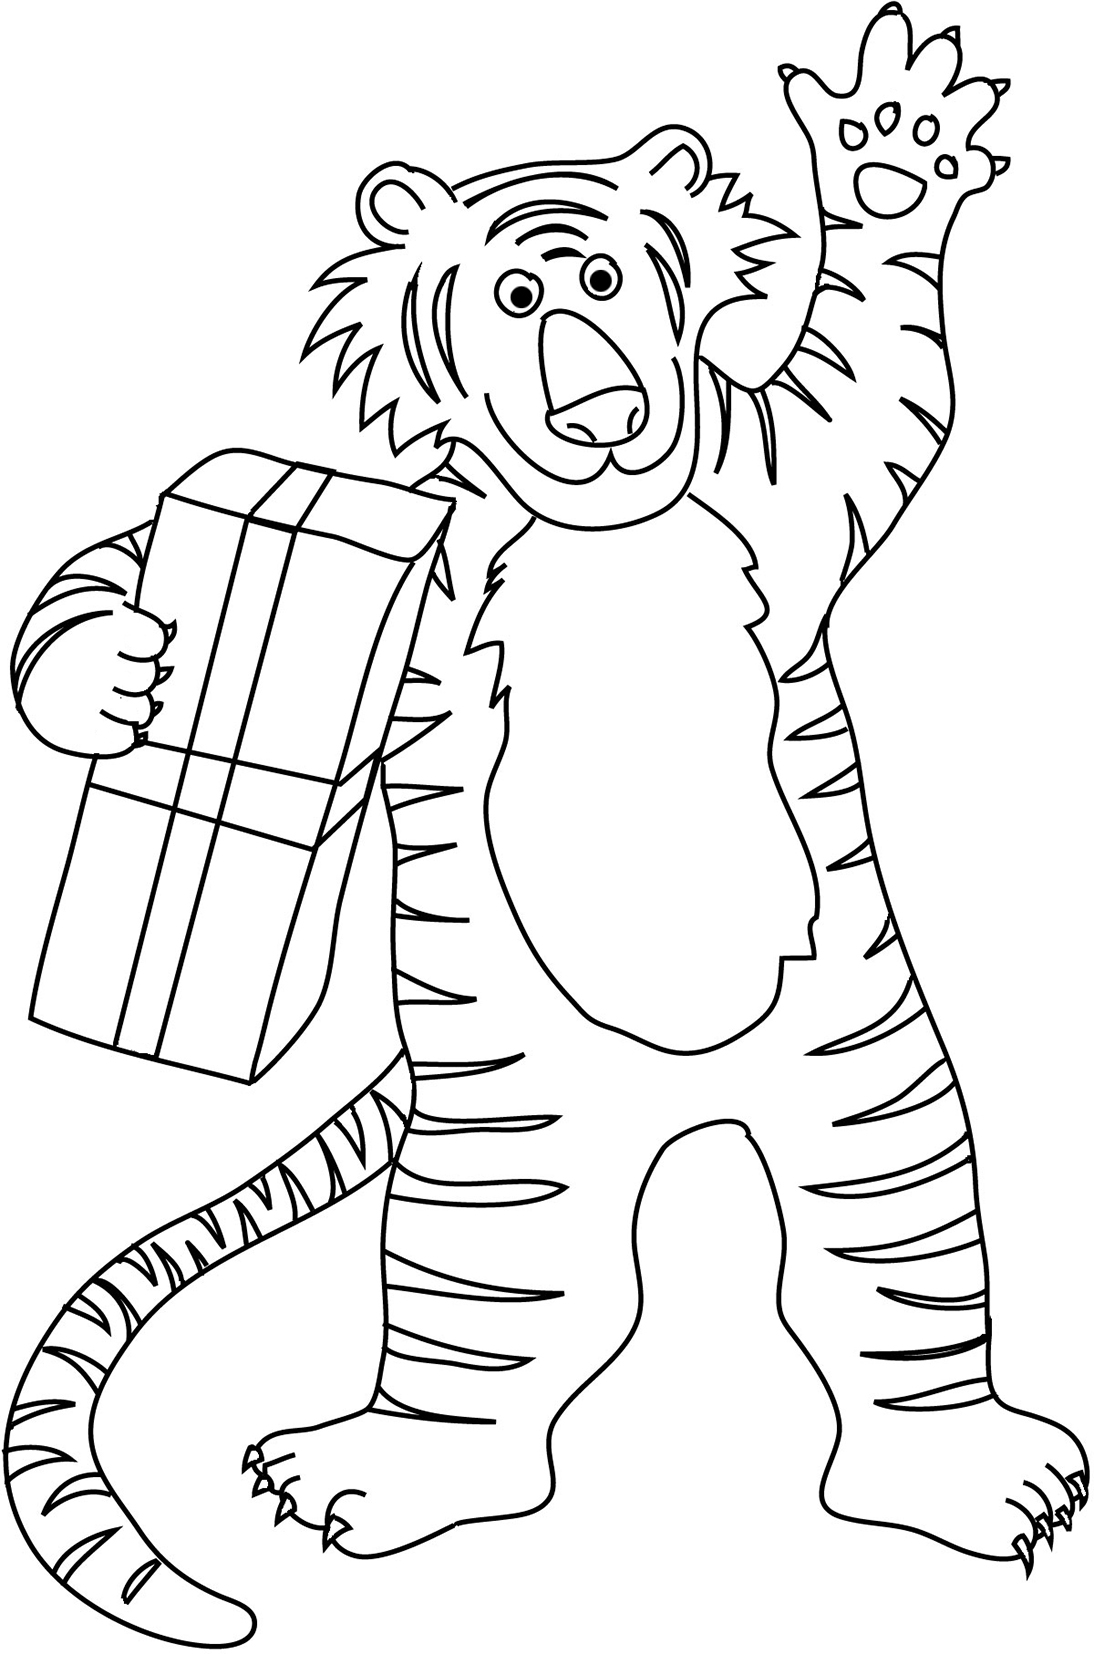 tiger coloring sheet with present